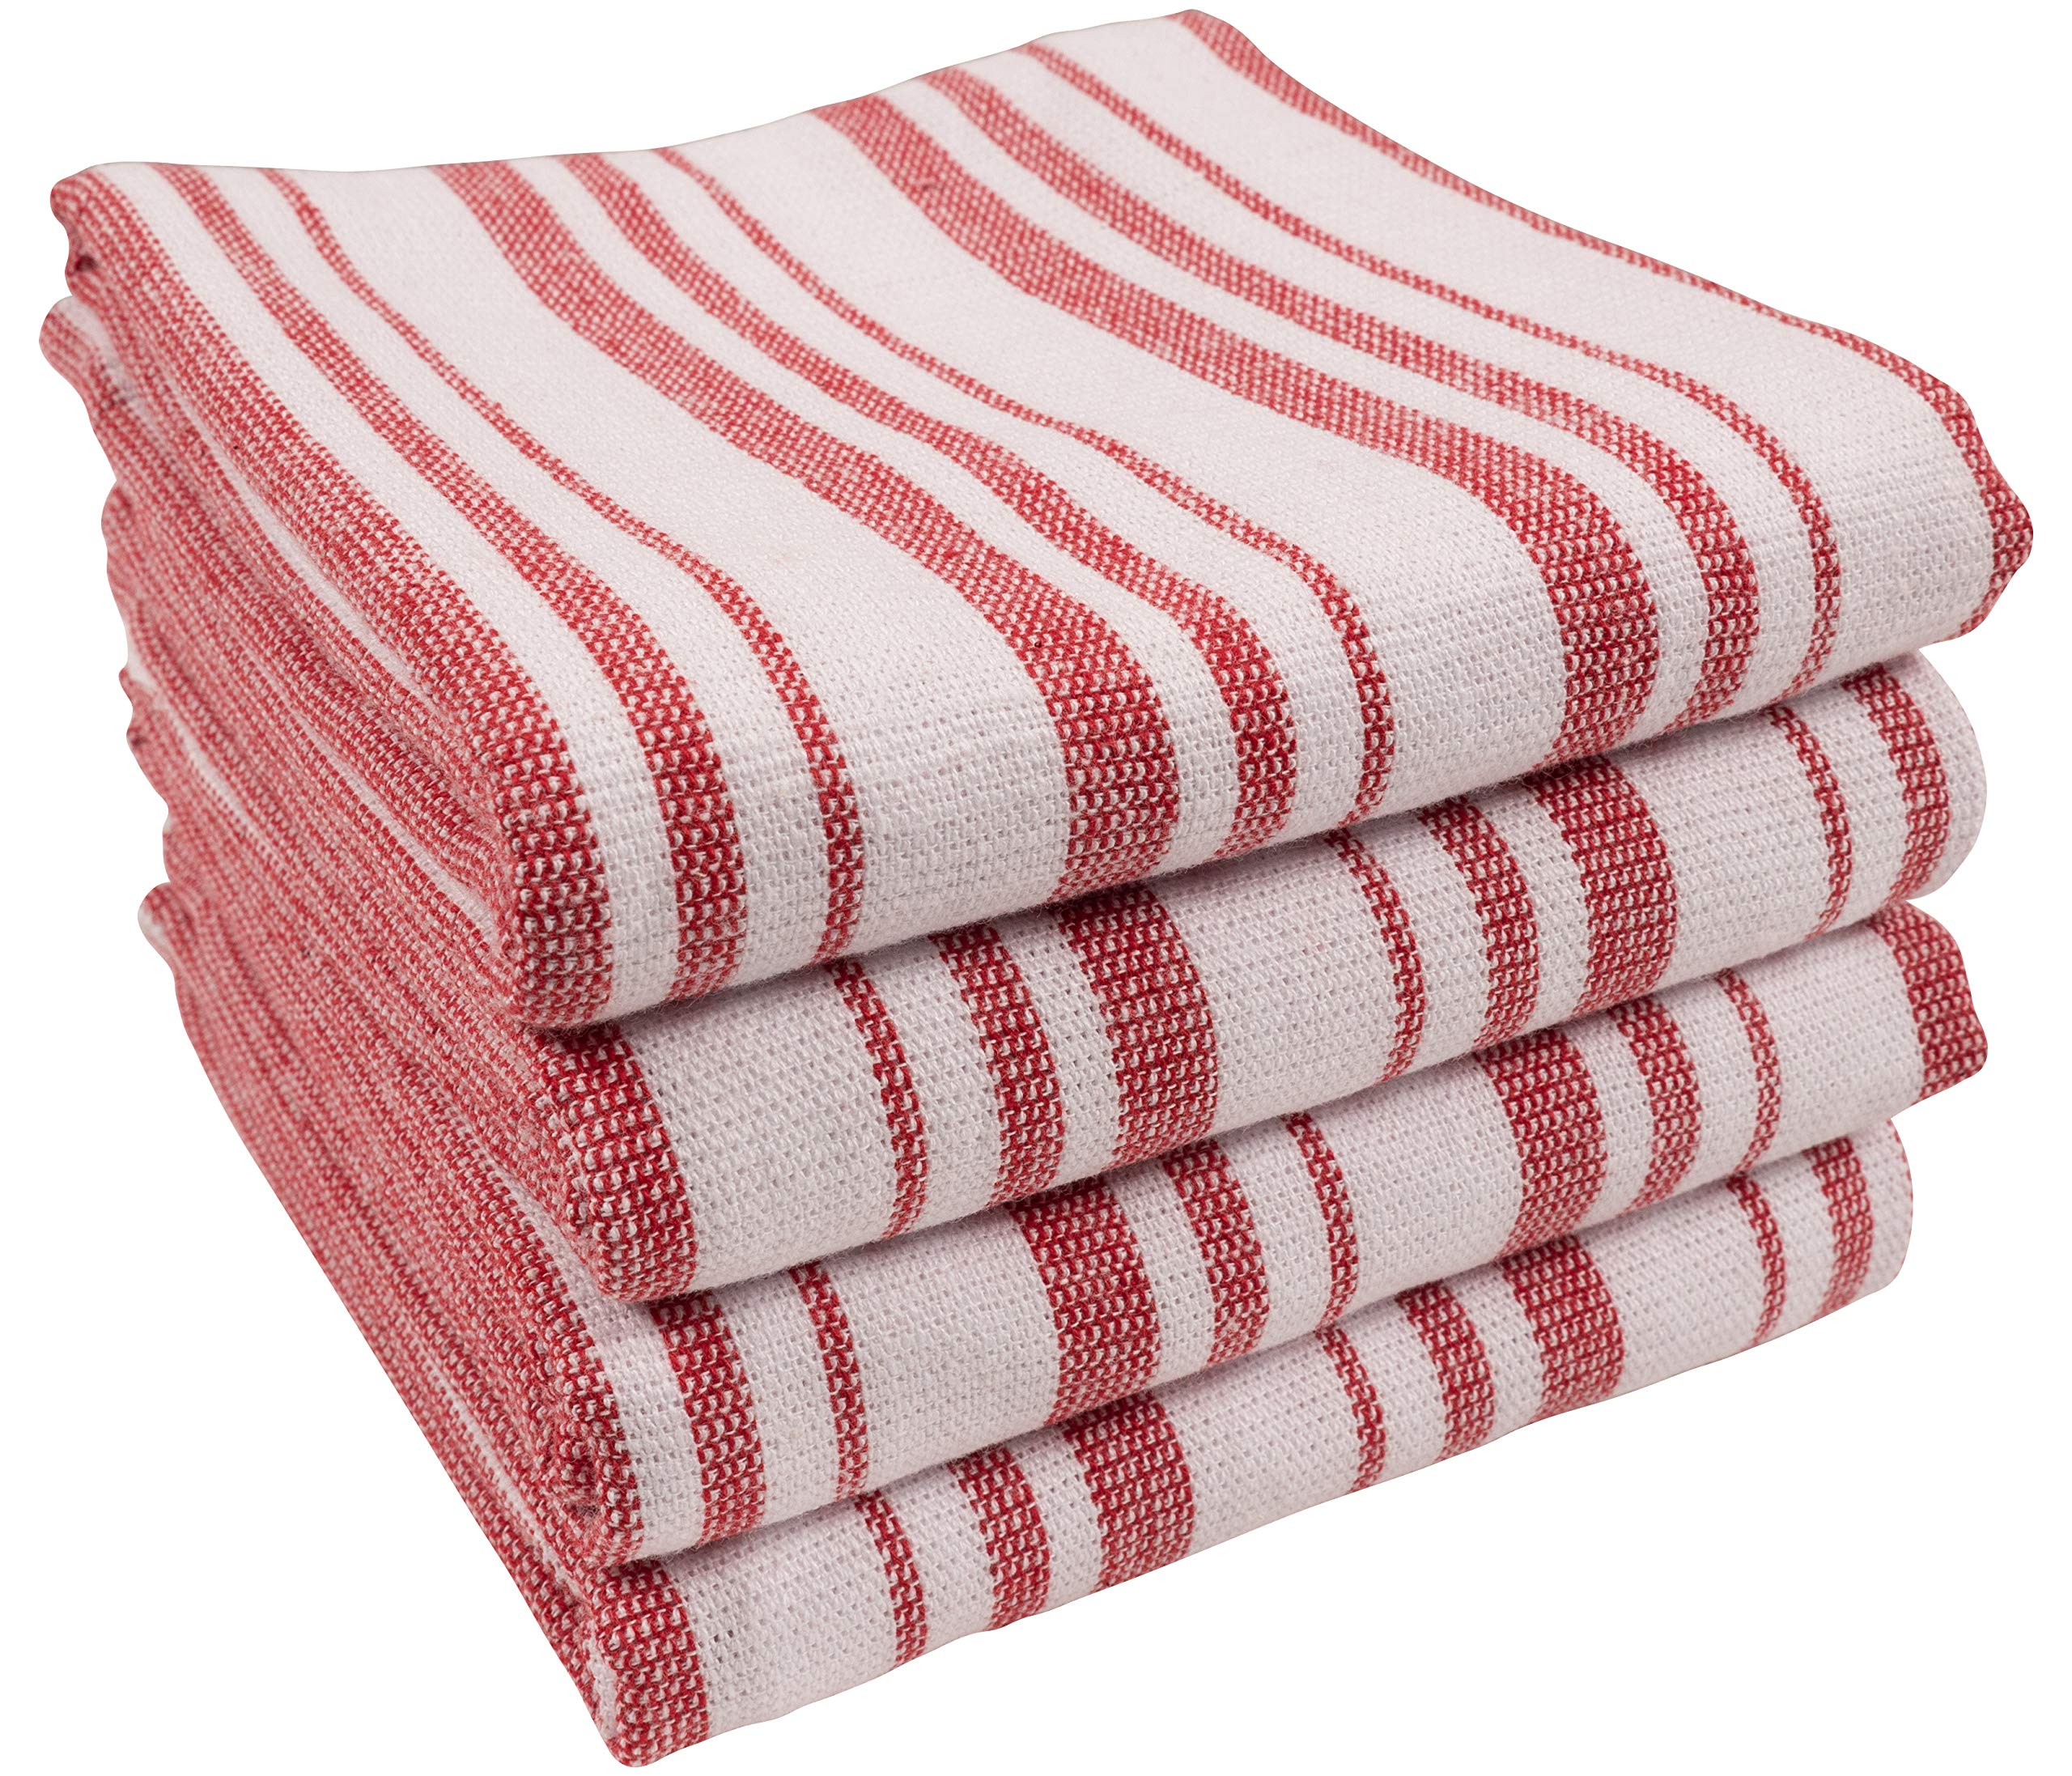 Kaf Home York Casserole Stripe Reversible Terry Cloth Kitchen Towels Set Of 4 100 Cotton Absorbent And Function Kitchen Utility Towels Red